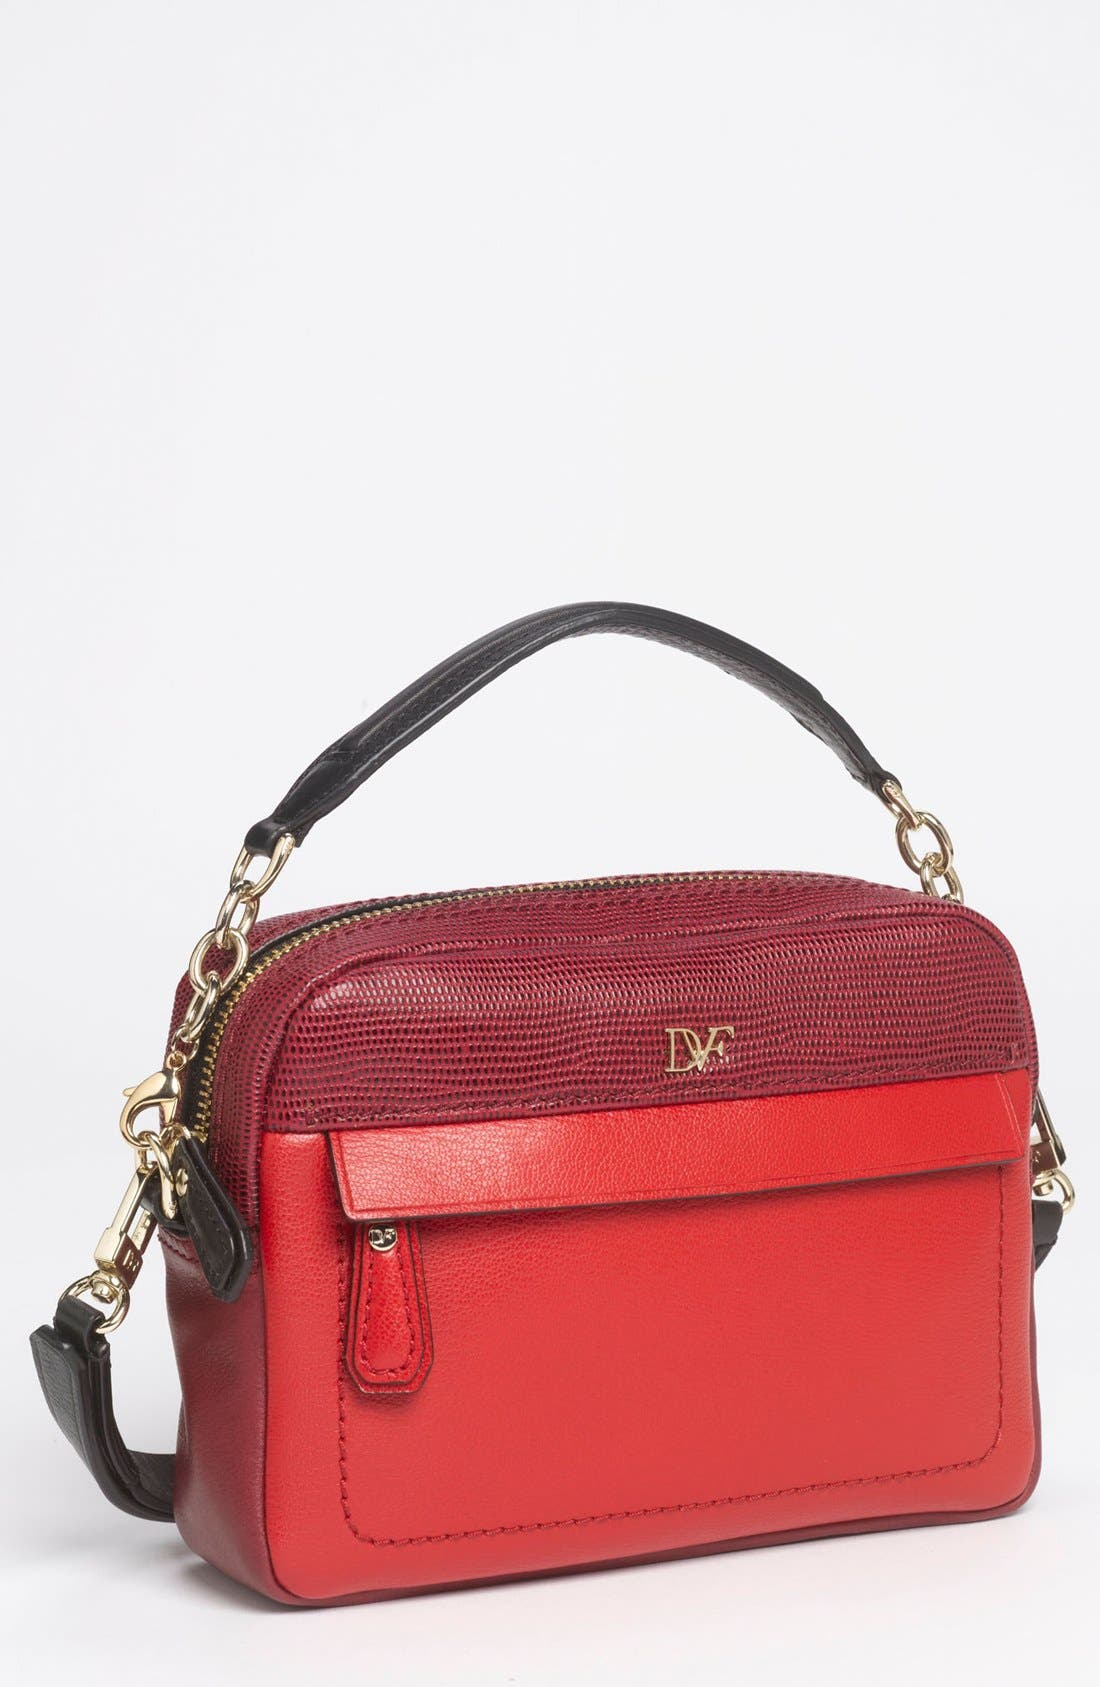 Alternate Image 1 Selected - Diane von Furstenberg 'Milo - Mini' Lizard Embossed Crossbody Bag (Online Only)